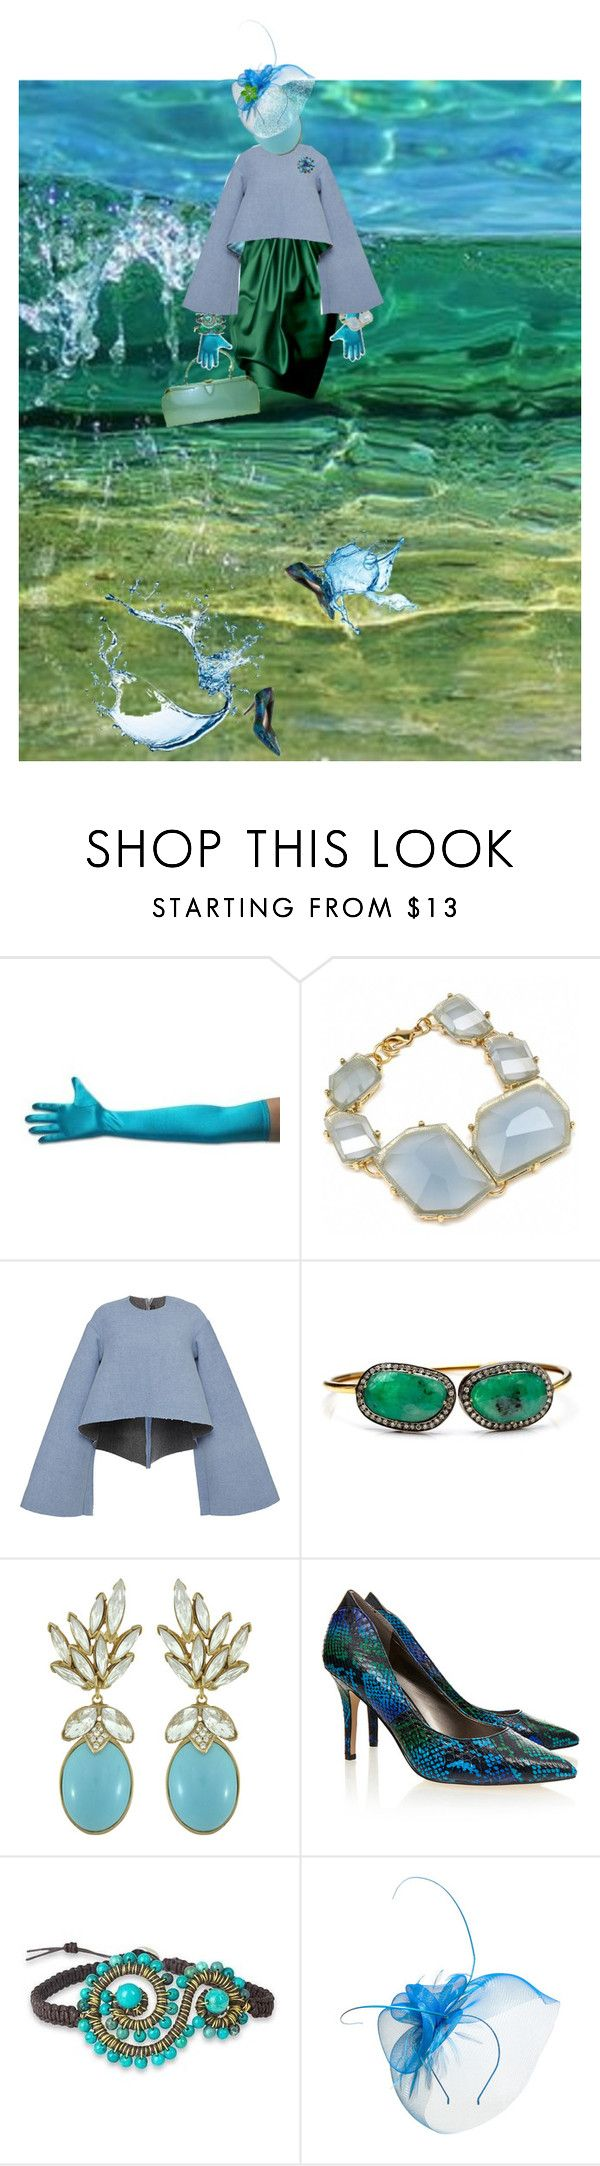 """""""A Walk in blue and green waters"""" by diannecollier ❤ liked on Polyvore featuring Zuhair Murad, Fantasy Jewelry Box, E L L E R Y, Nush, Ciner, Sam Edelman, NOVICA, Mascara and polyvoreeditorial"""